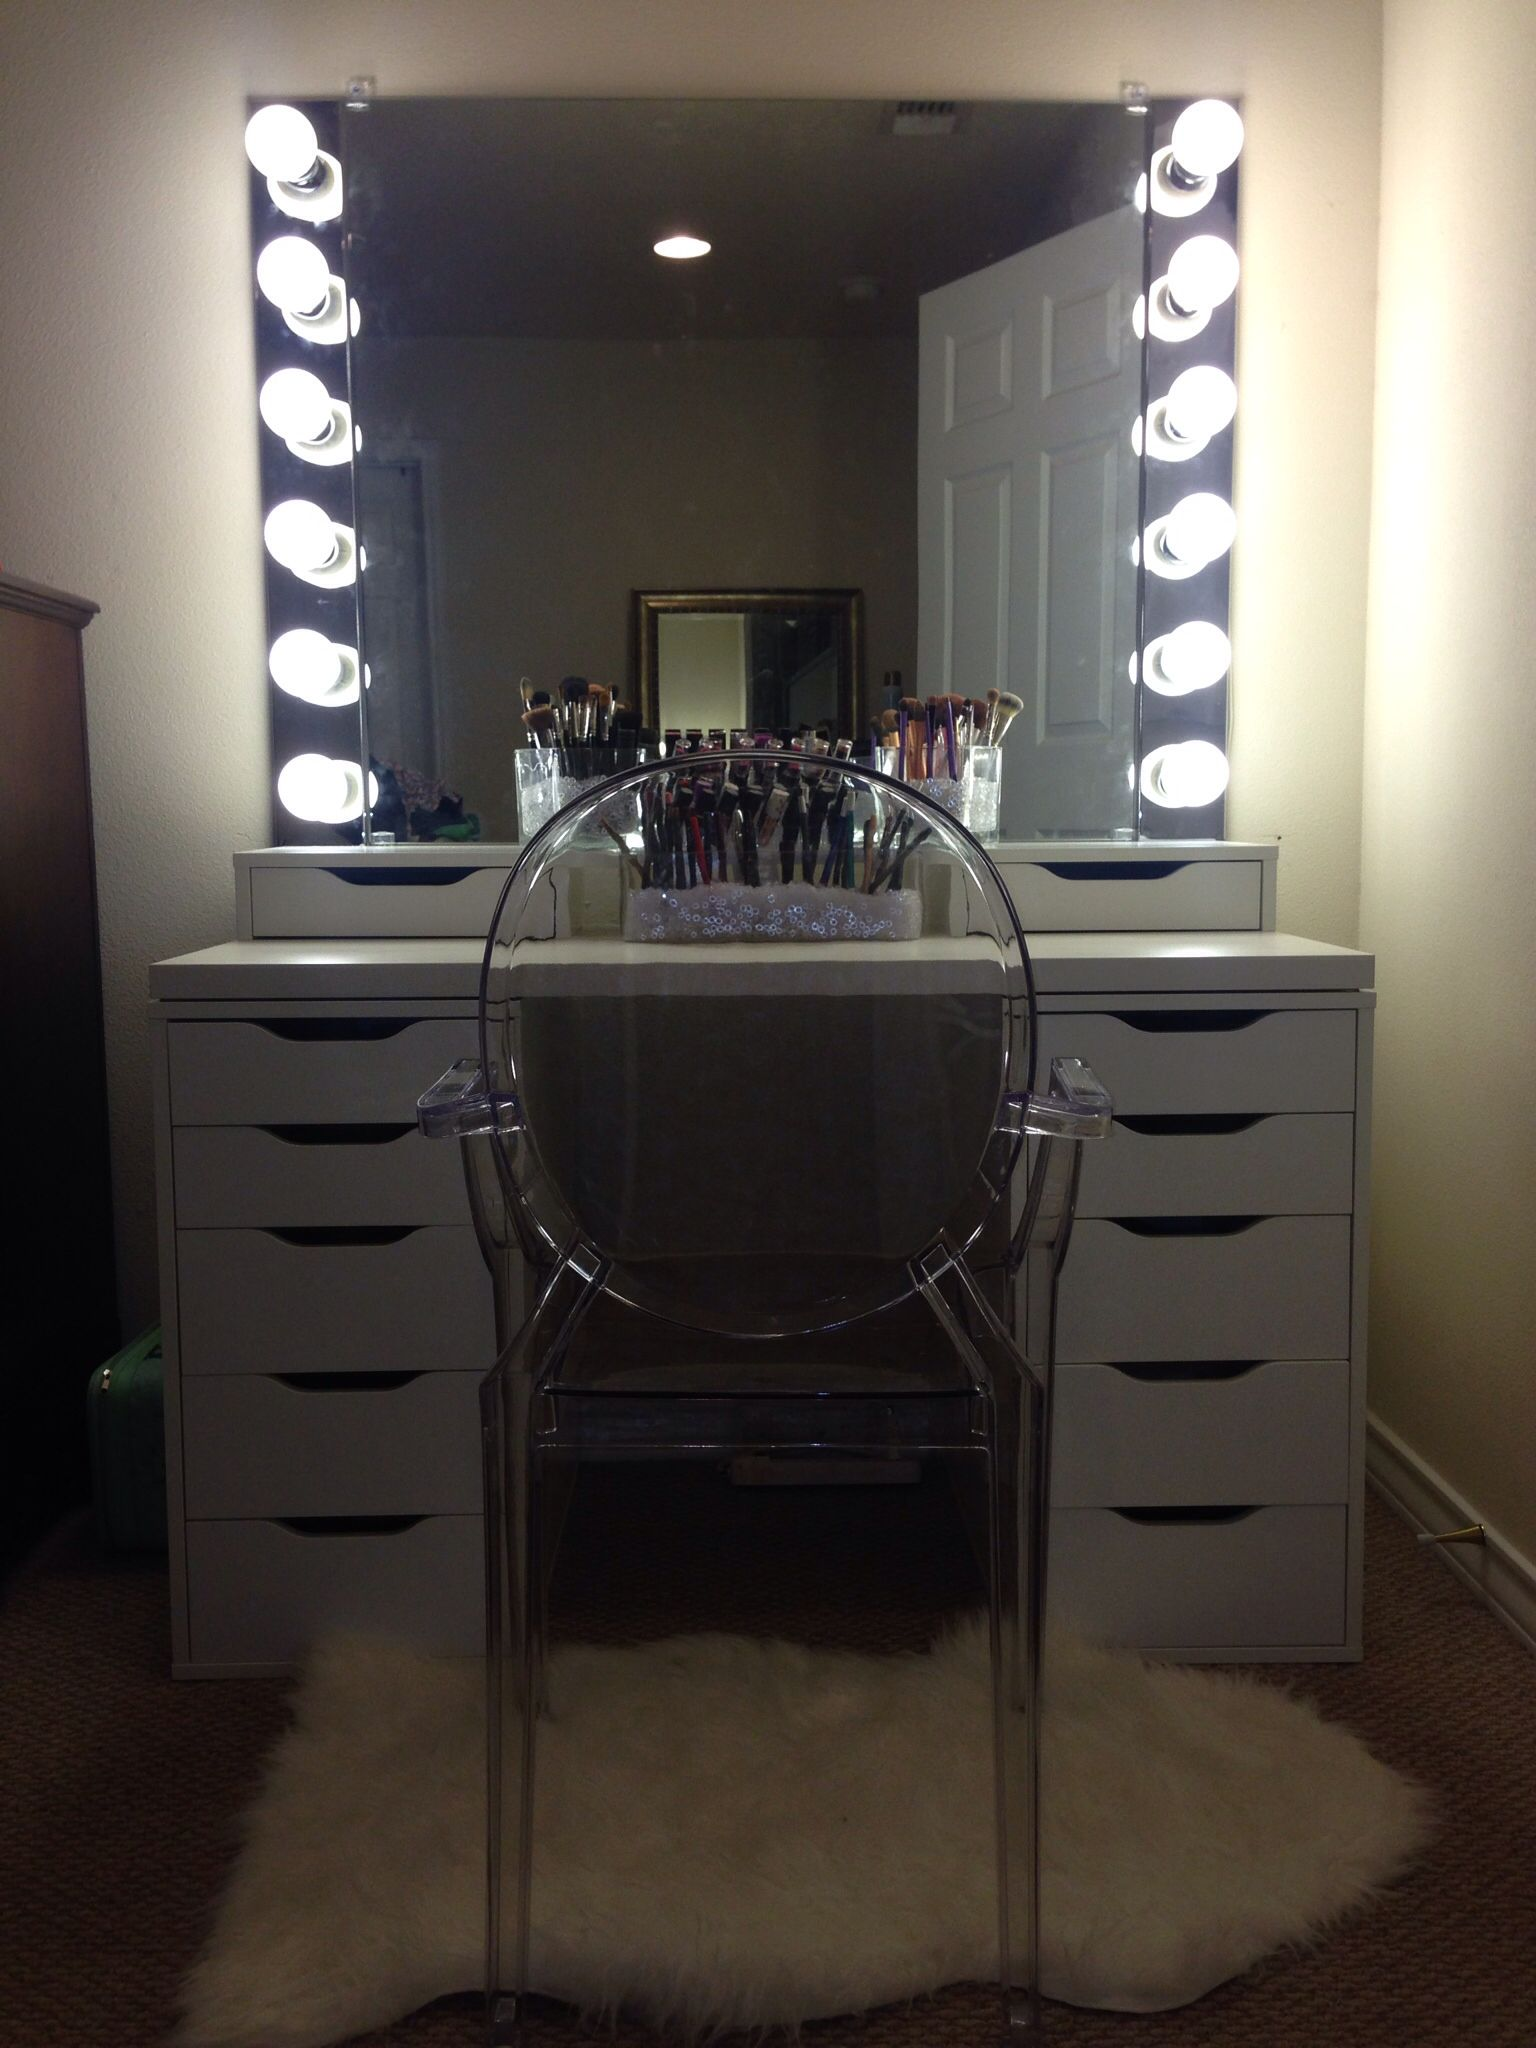 IKEA Makeup Vanity Mirror with Lights